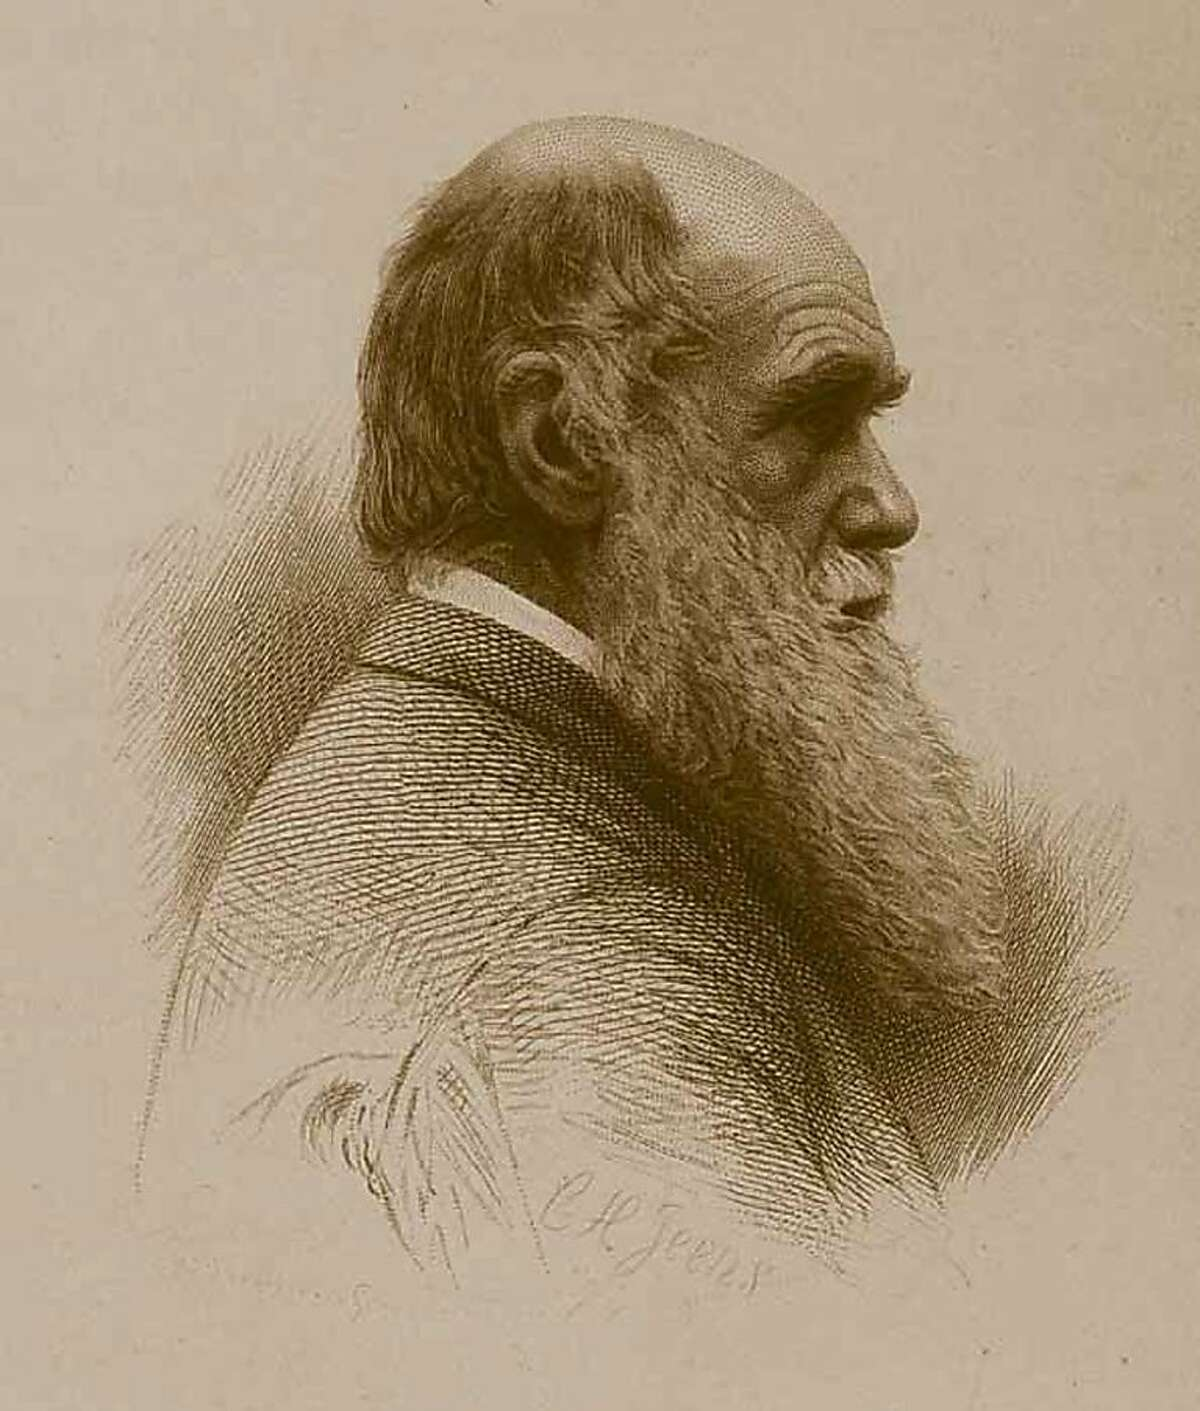 (NYT26) UNDATED -- Feb. 9, 2009 -- SCI-DARWIN-MISUNDERSTOOD-4 --- An engraving of Charles Darwin by C.H. Jeens. (Courtesy of Luesther T. Mertz Library, The New York Botanical Garden/The New York Times) *Only for use with NYT stories from Feb. 10 issue of Science Times section on Darwin. All other use prohibited. Ran on: 02-14-2009 Charles Darwin, C.H. Jeens engraving Ran on: 02-14-2009 Charles Darwin, C.H. Jeens engraving Ran on: 02-14-2009 Charles Darwin, C.H. Jeens engraving Ran on: 05-11-2009 Ran on: 05-11-2009 Ran on: 05-11-2009 Ran on: 06-22-2009 Ran on: 06-22-2009 Ran on: 06-22-2009 Ran on: 12-04-2011 Charles Darwin on the eye: organ of extreme perfection. Ran on: 12-04-2011 Charles Darwin on the eye: organ of extreme perfection. Ran on: 12-04-2011 Charles Darwin on the eye: organ of extreme perfection.